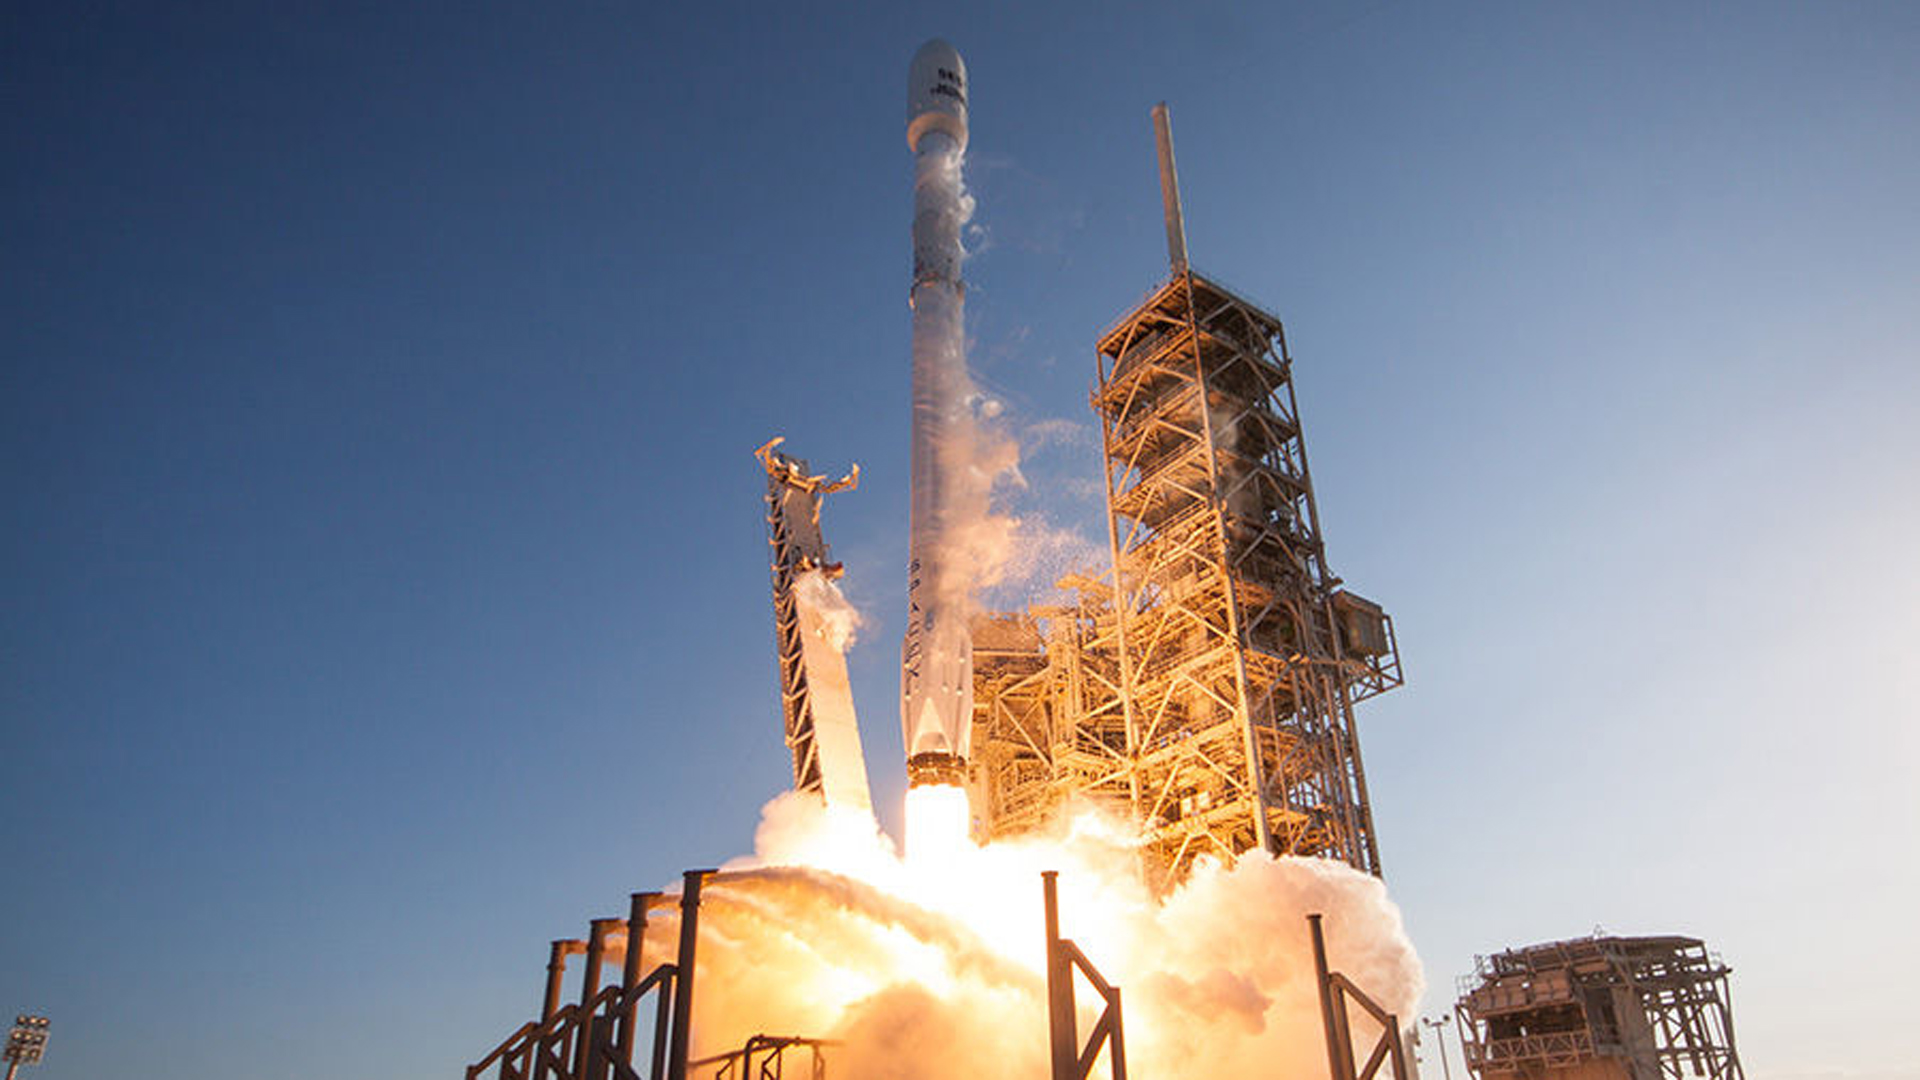 A SpaceX Falcon 9 rocket lifts off from a launch pad in Florida on March 30, 2017. (Credit: SpaceX)